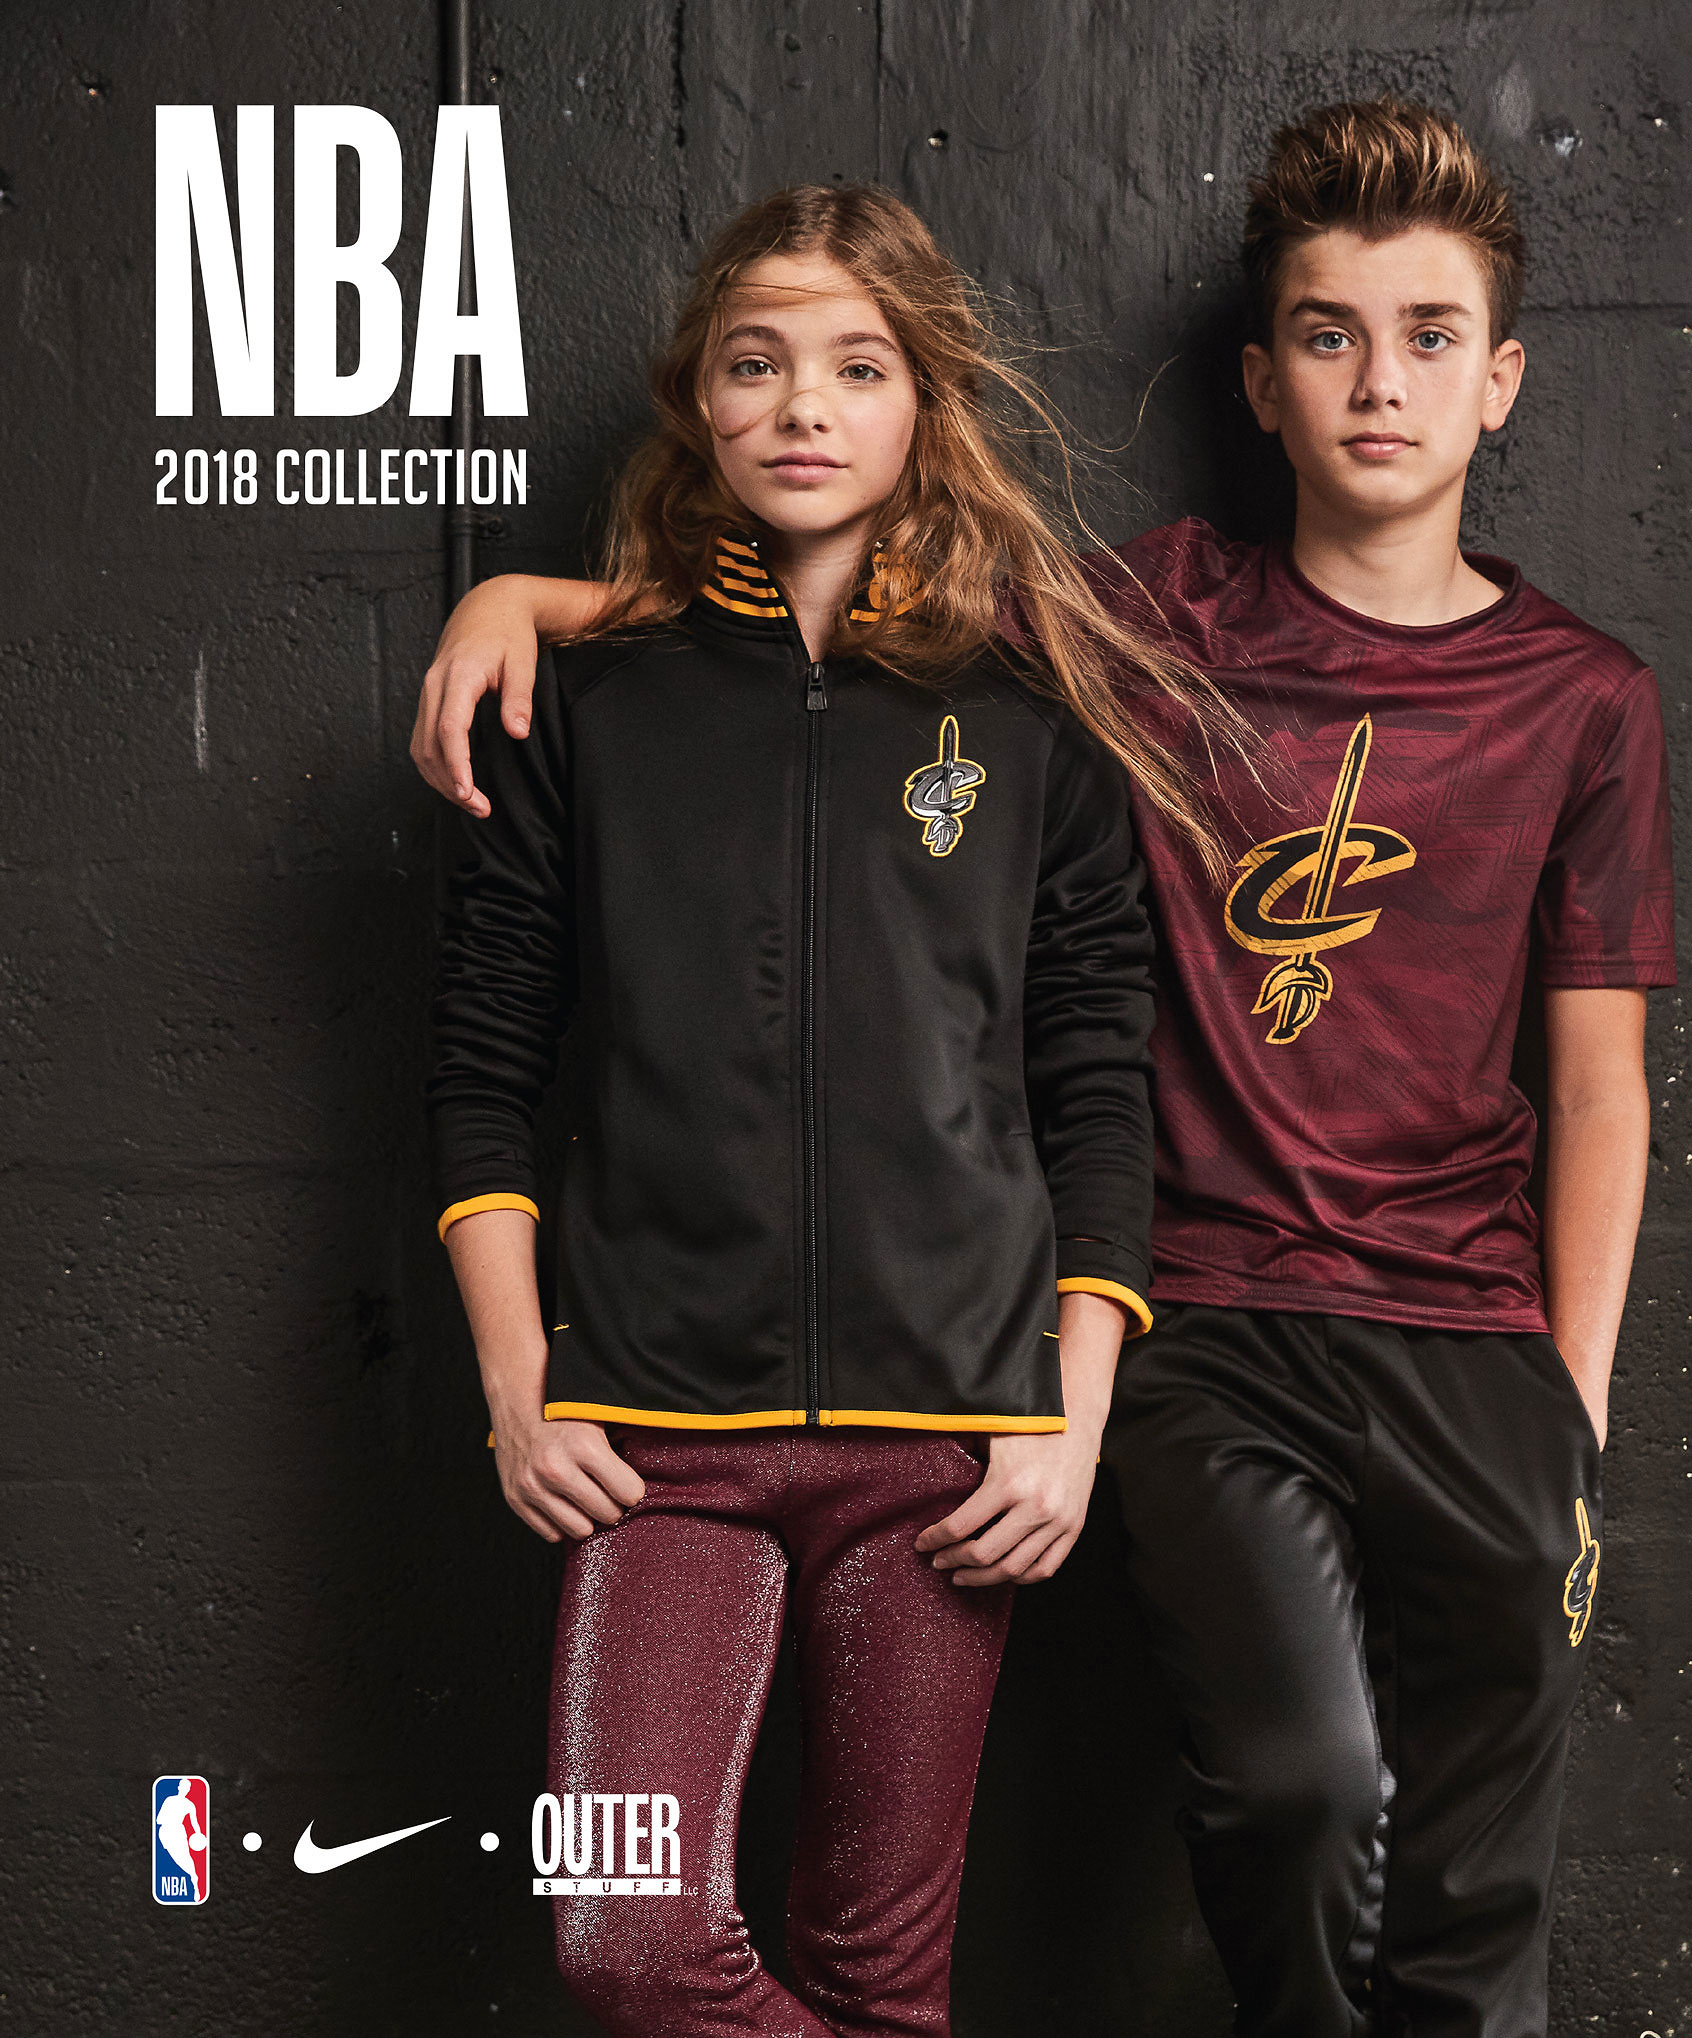 Outersttuf_NBA-2018_01_R1